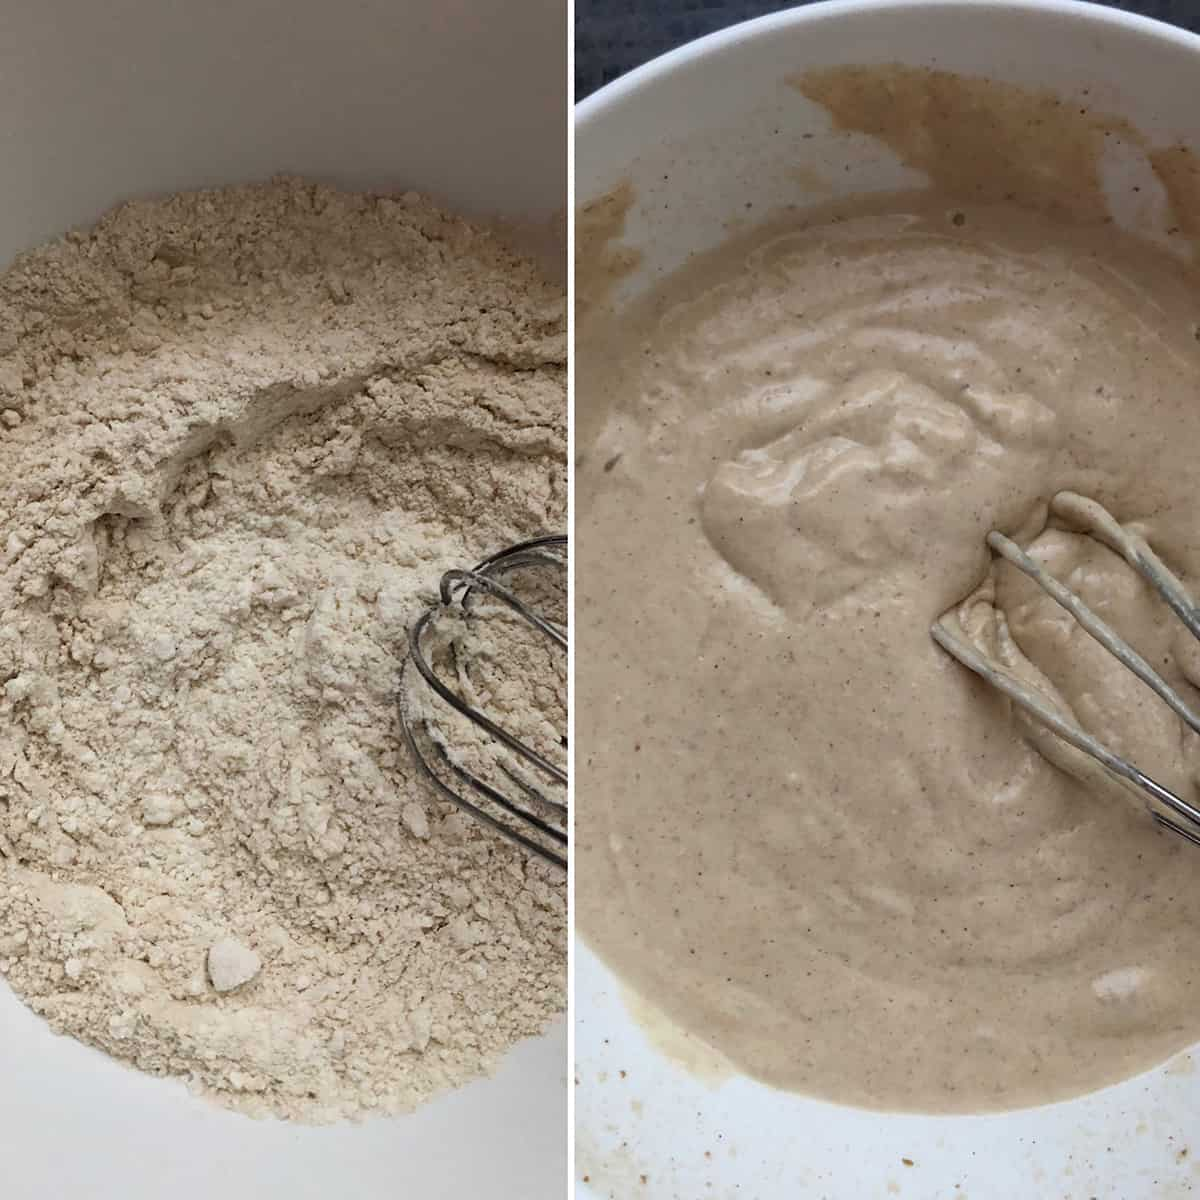 Side by side photos of dry ingredients and the batter